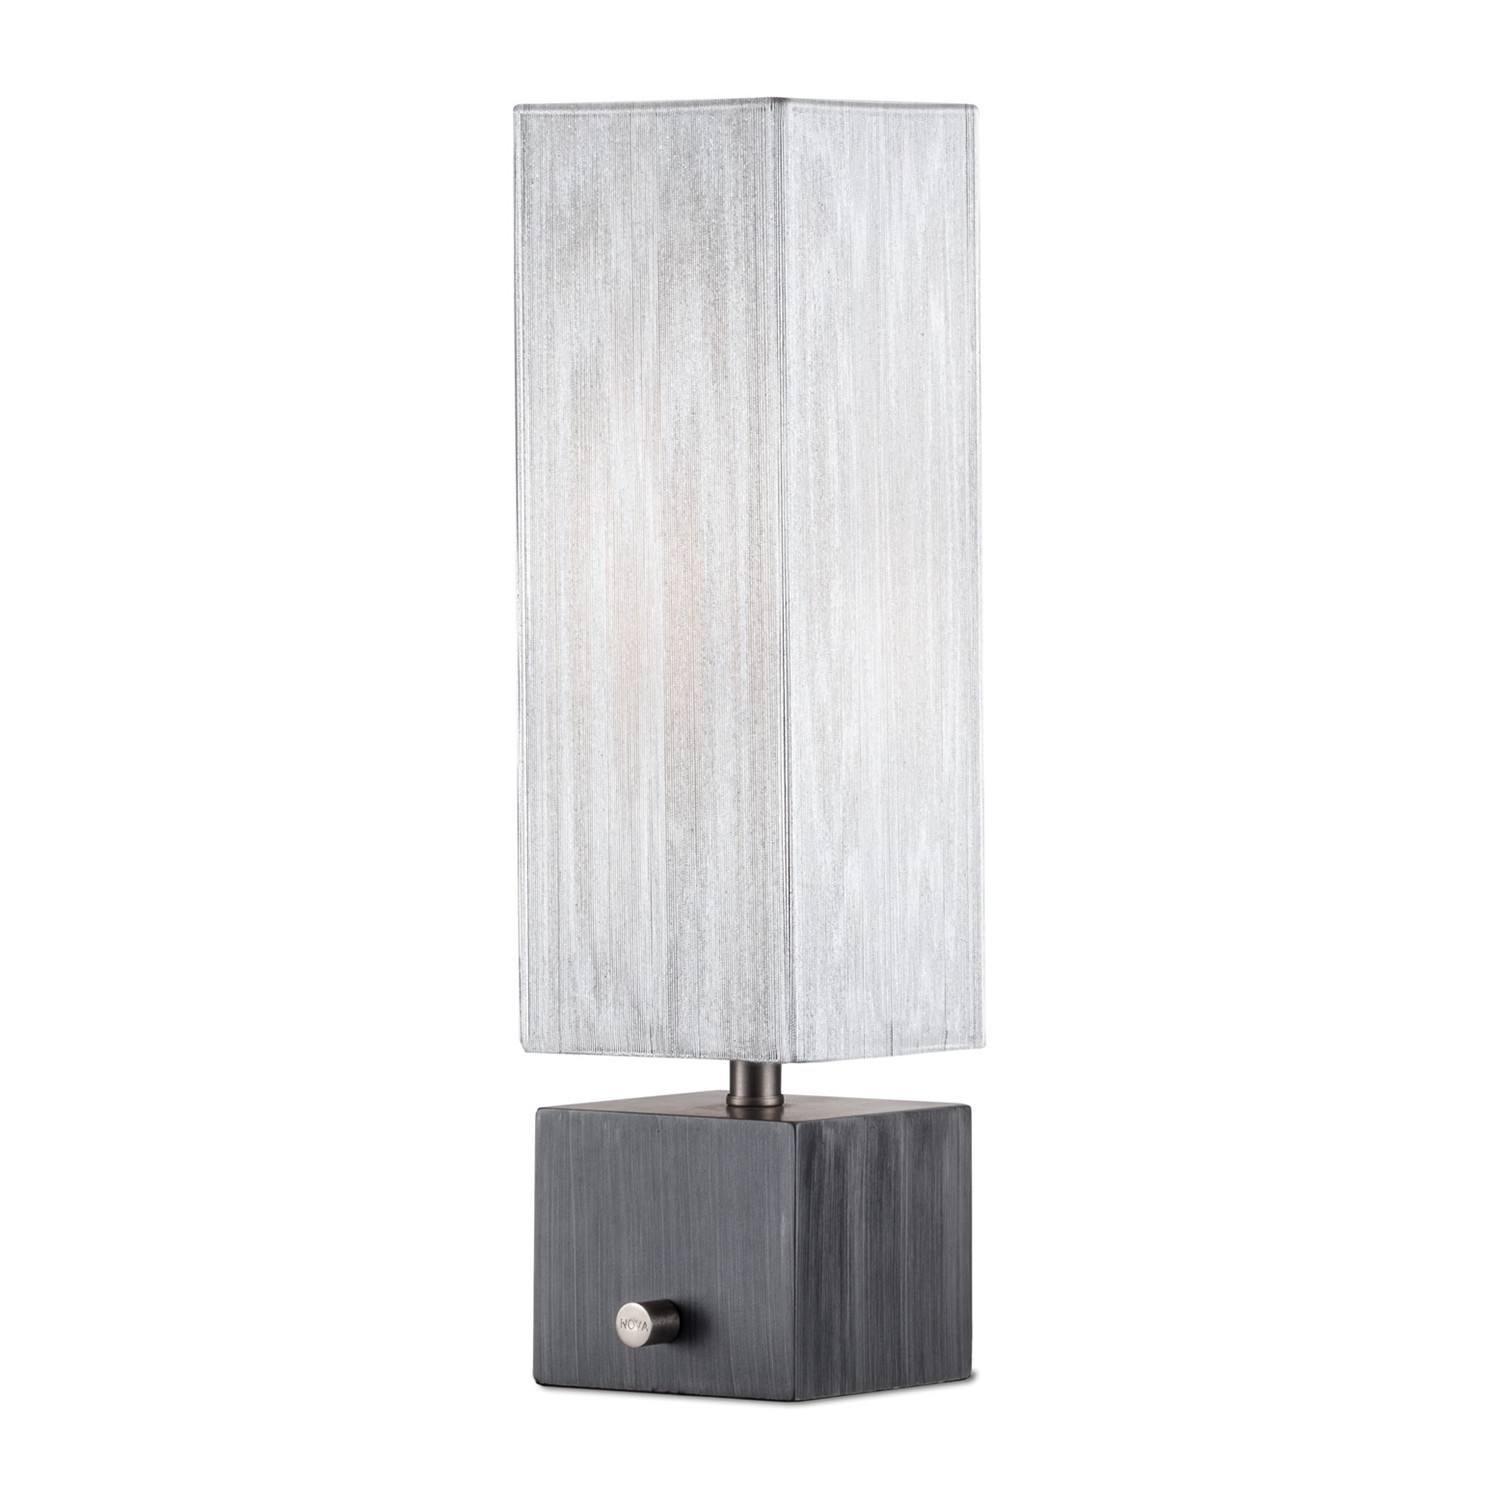 cascade accent table lamp charcoal gray nova lamps touch large modern pier one area rugs ashley furniture office desk inch round tablecloth tree trunk solid wood end tables small